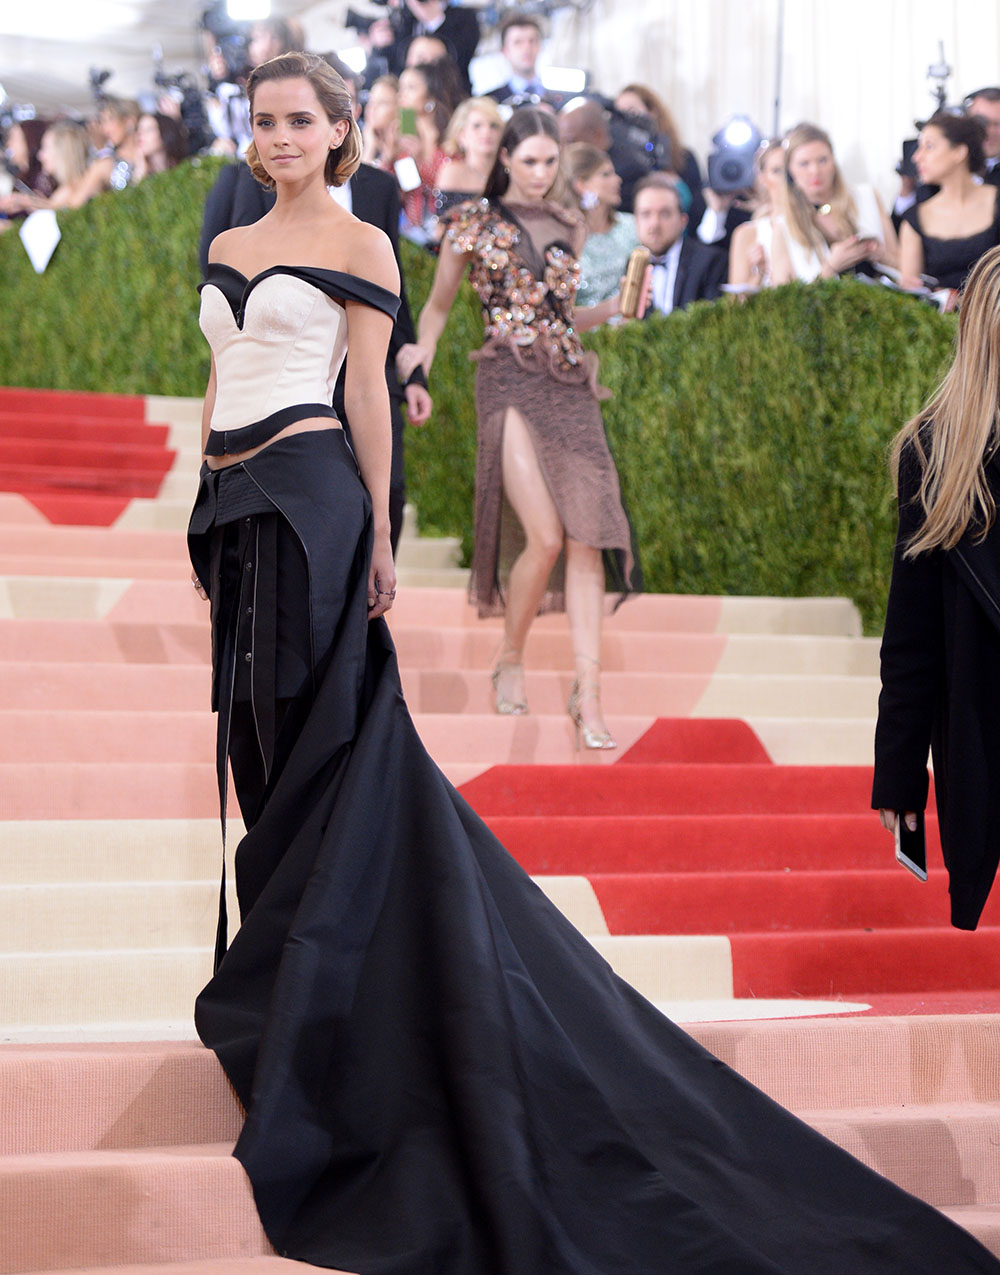 Emma Watson at the MET Gala 2016 wearing a Calvin Klein dress made from recycled plastic bottles